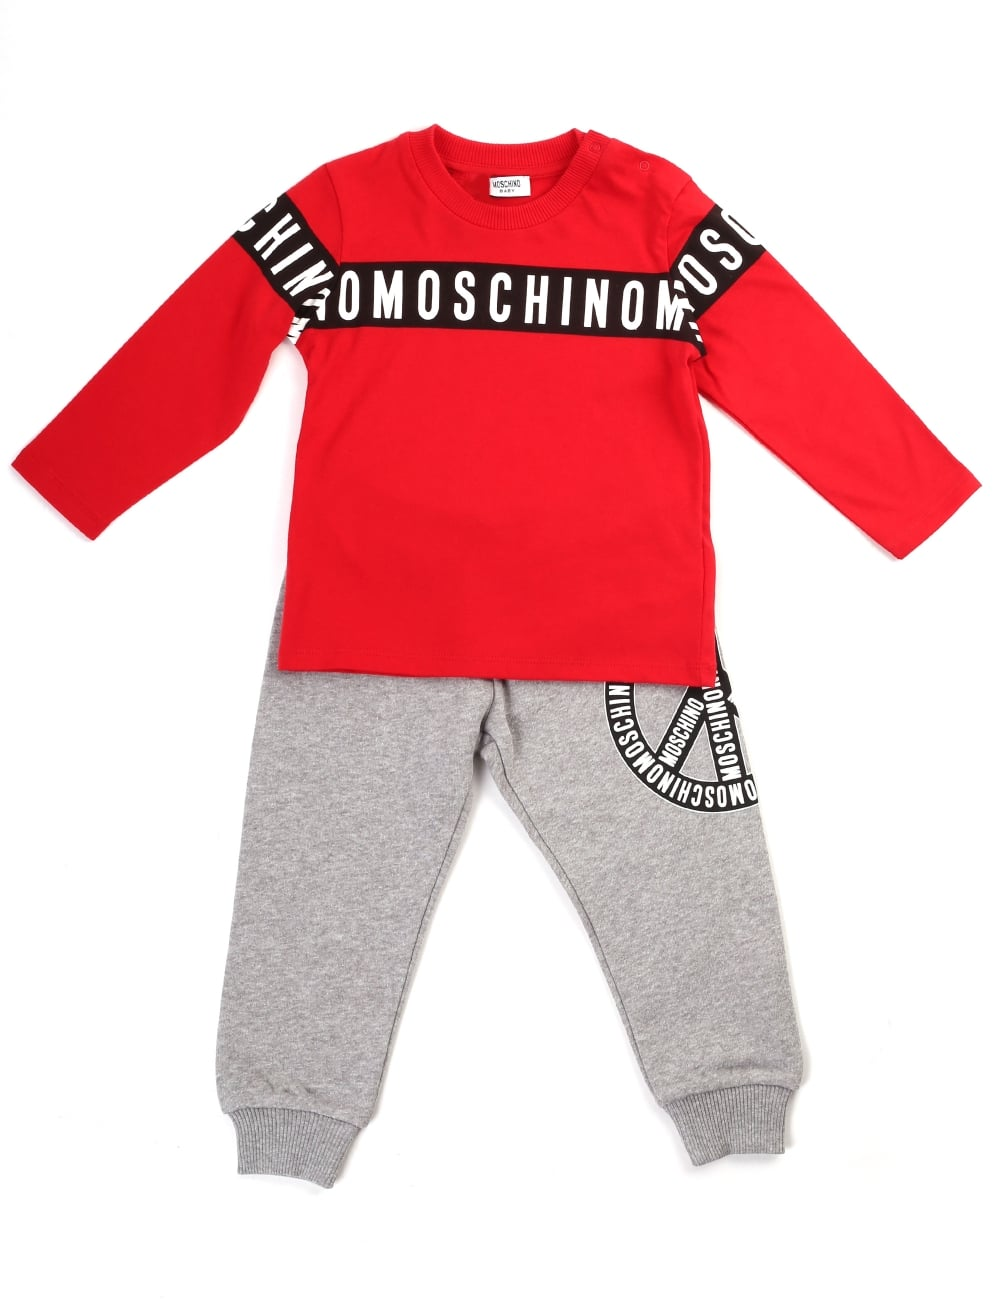 Moschino Boys Tee And Trousers Set 6fa85a3d4